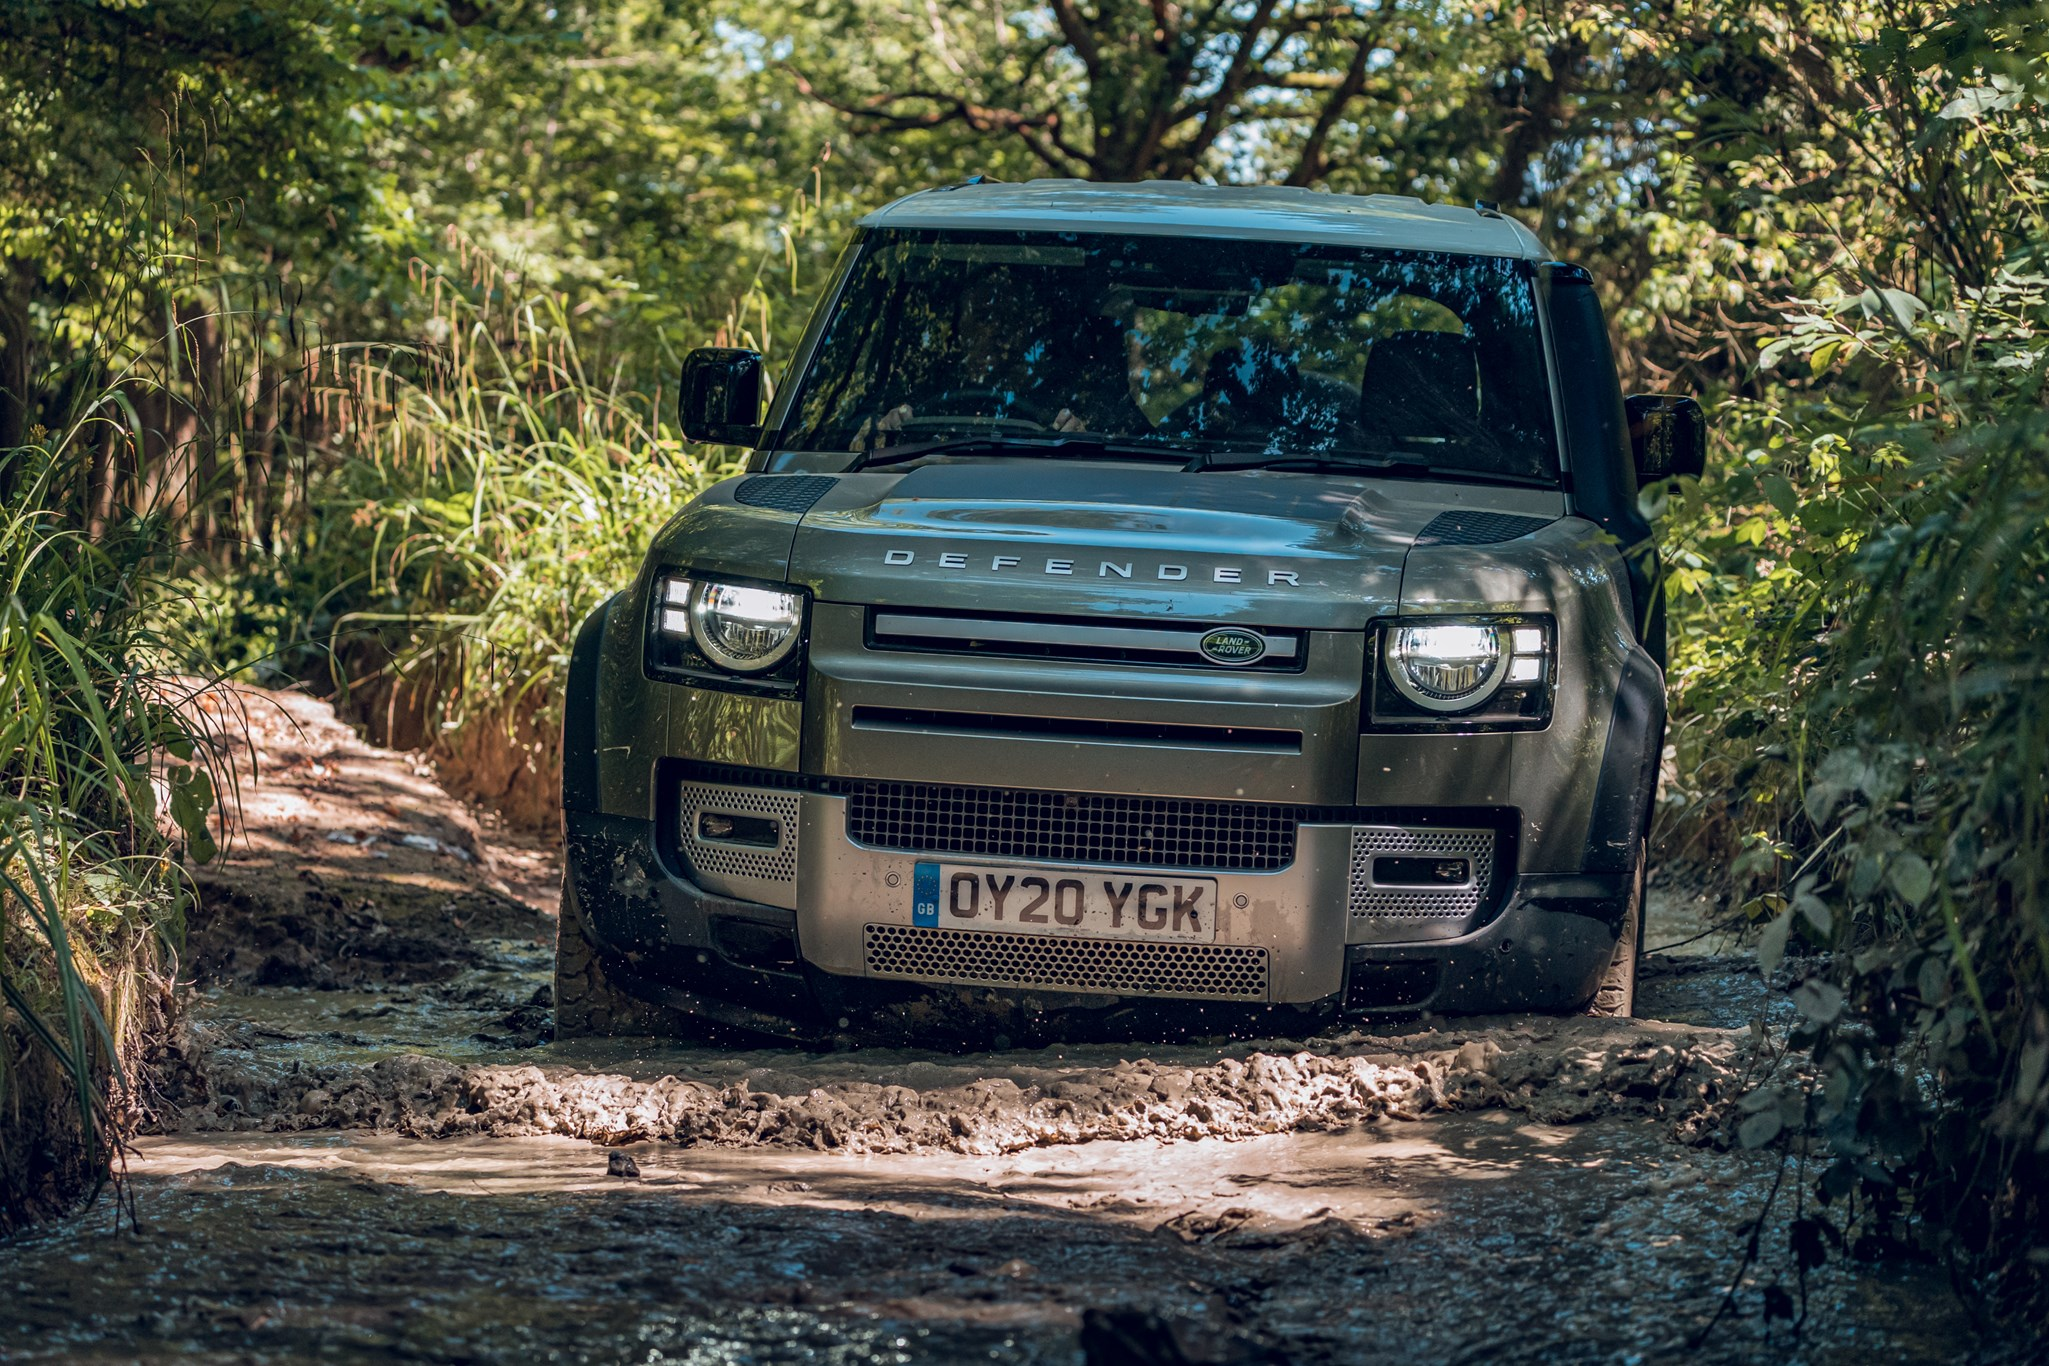 Land Rover Defender (2020) off-road view, driving